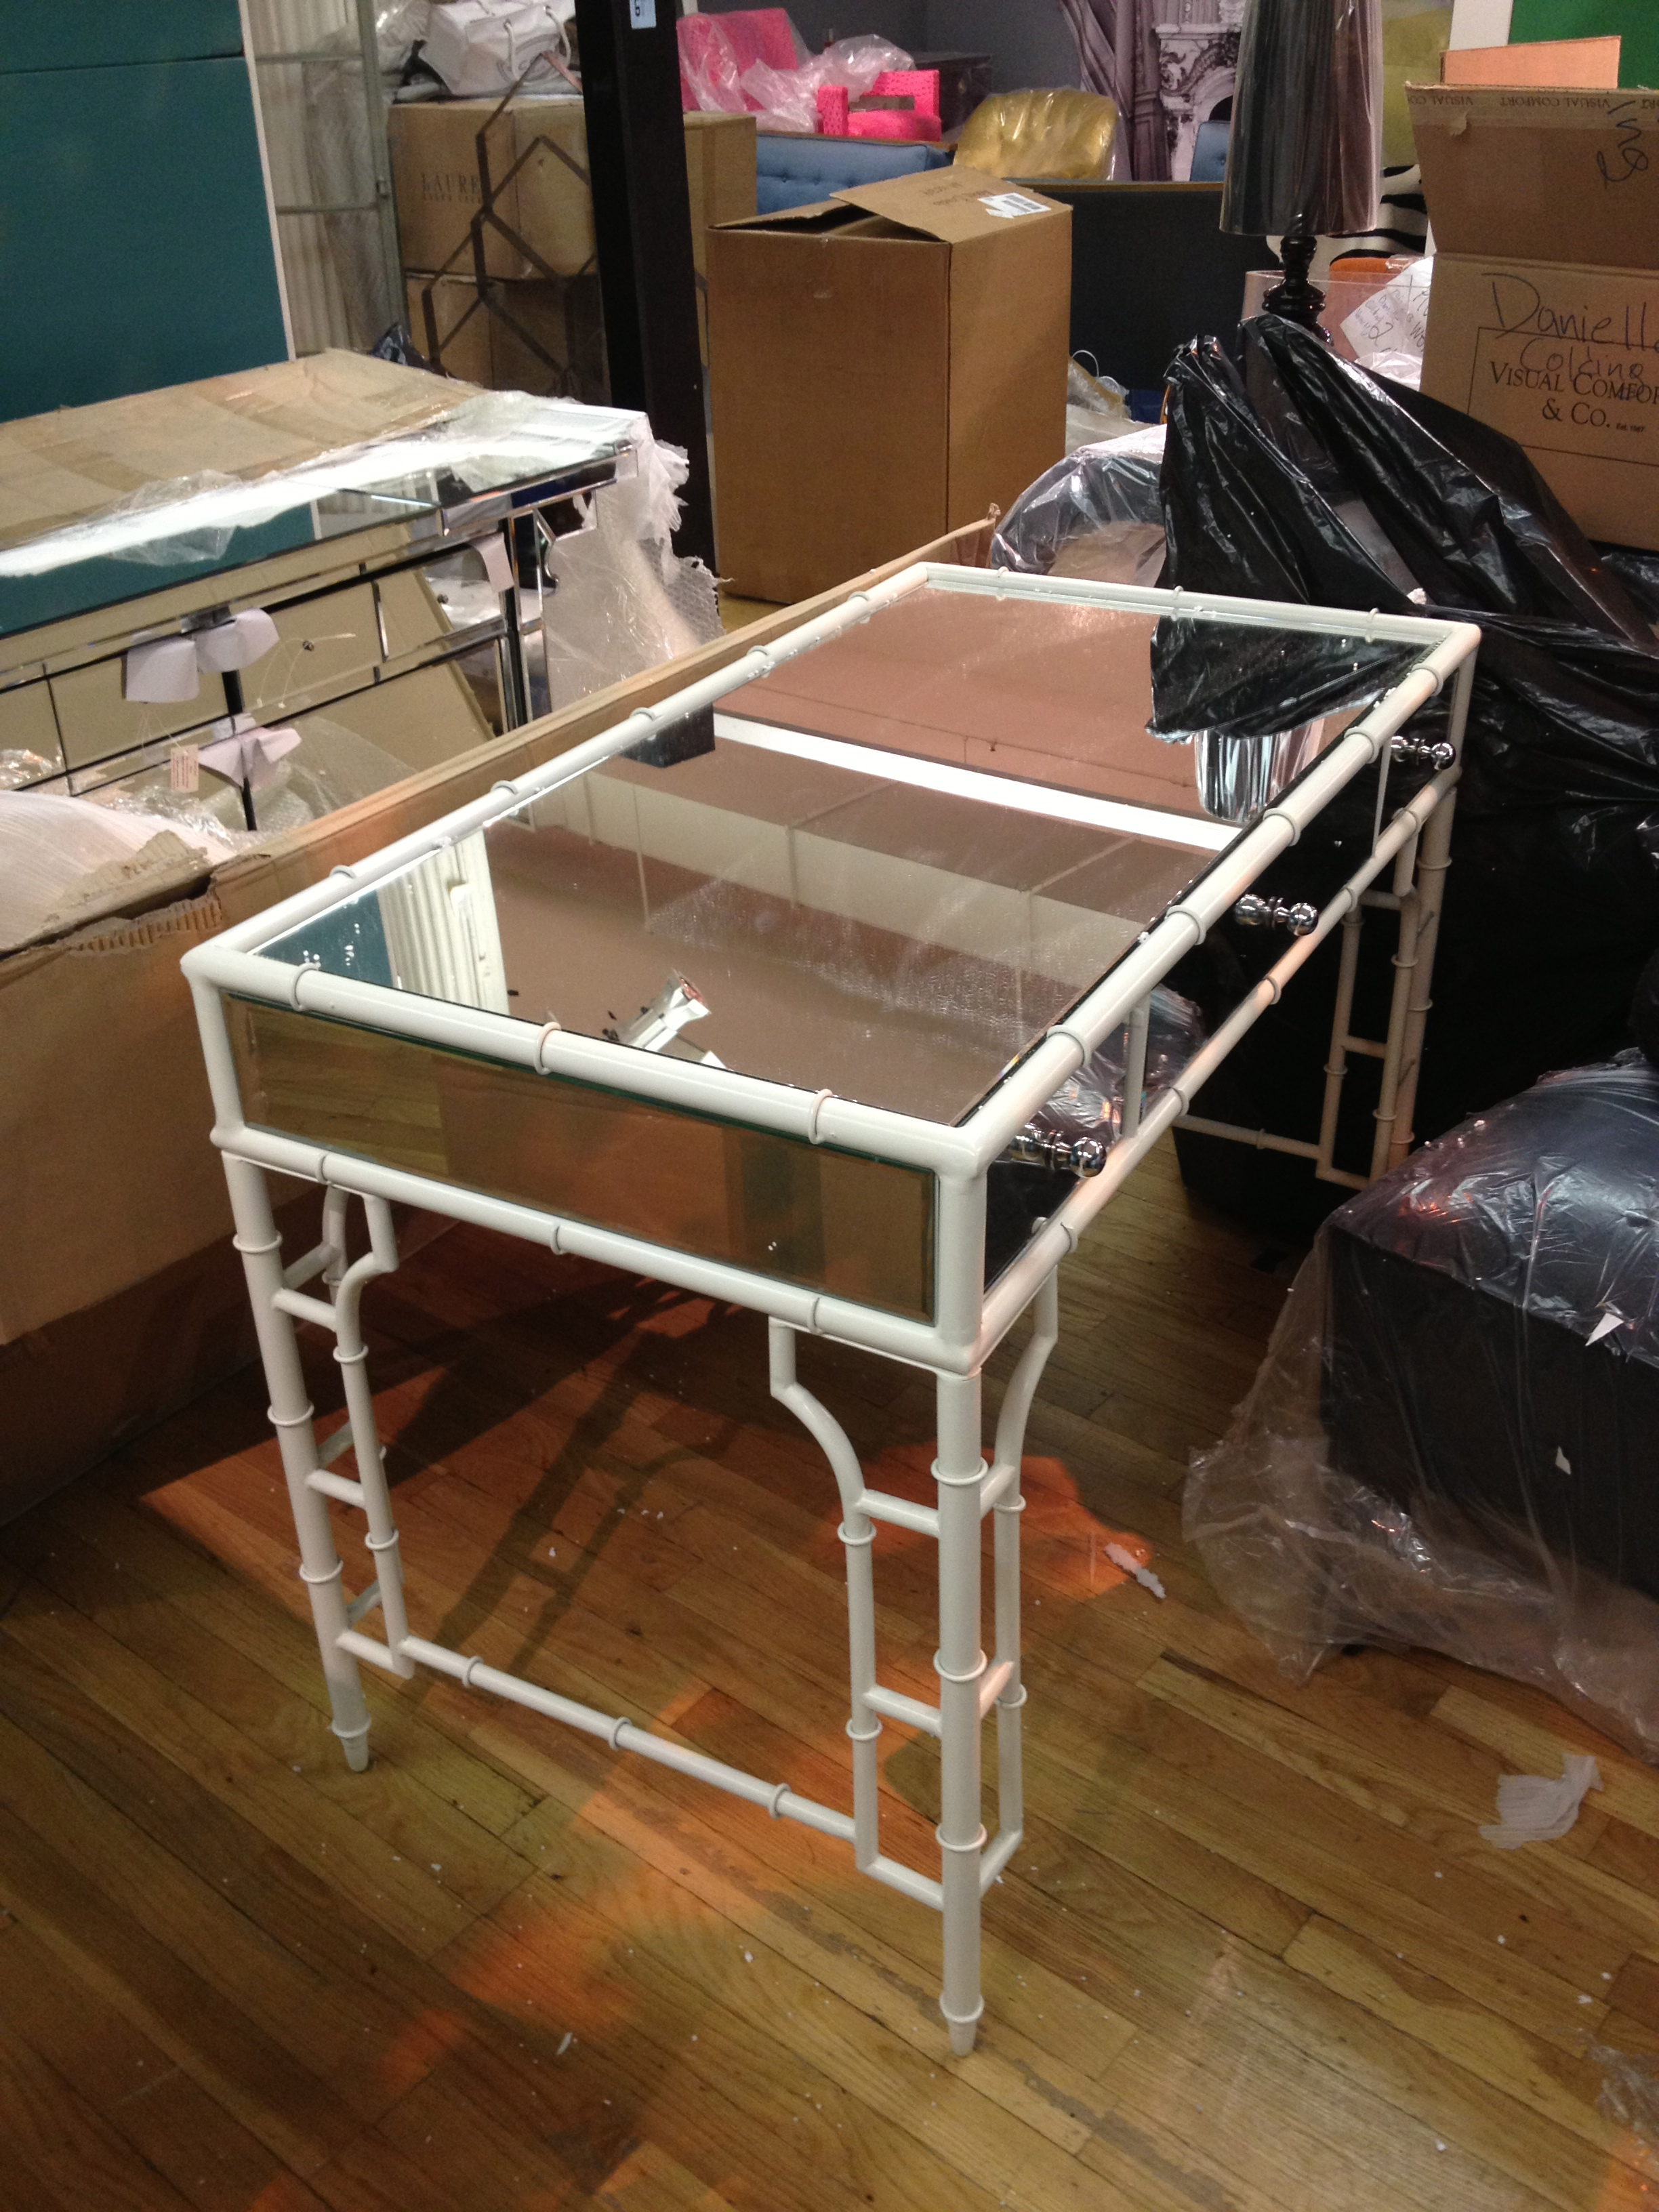 It all began with a vanity. Bungalow 5 was the first to say yes and with this vanity an idea was born.